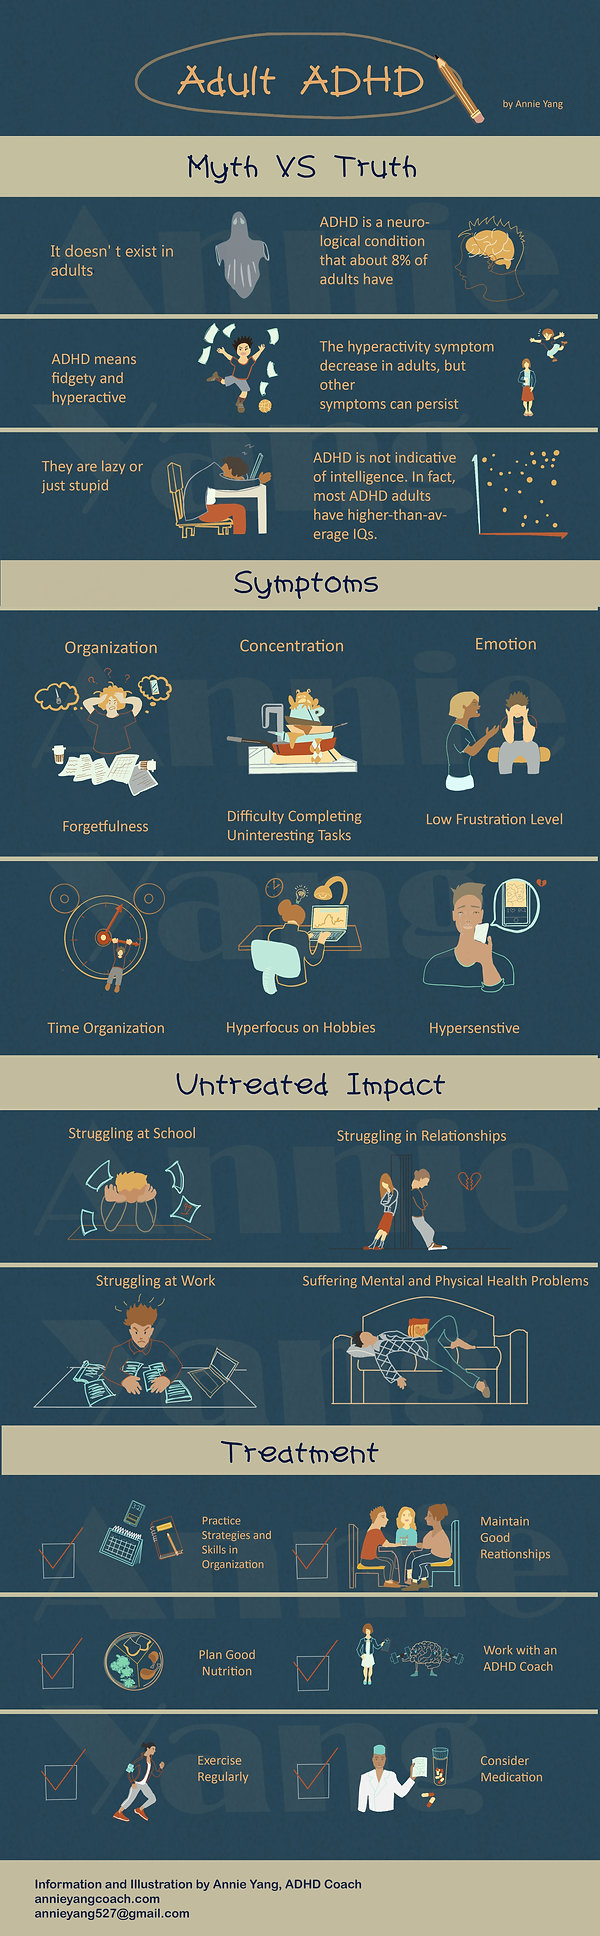 ADHD Coach Infographic